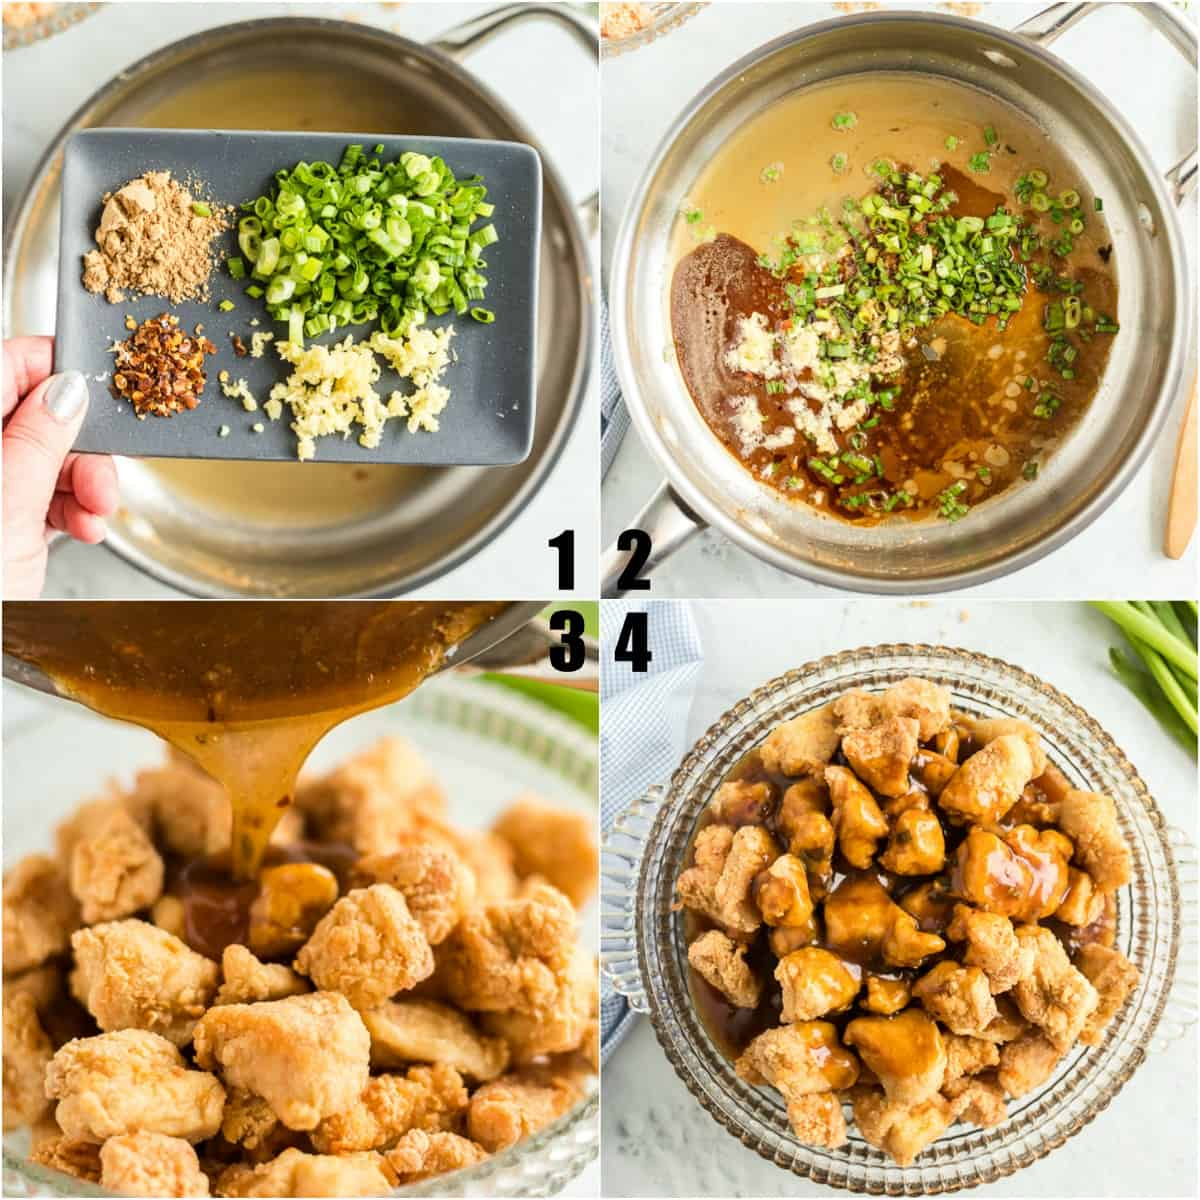 Step by step photos showing how to make orange chicken.